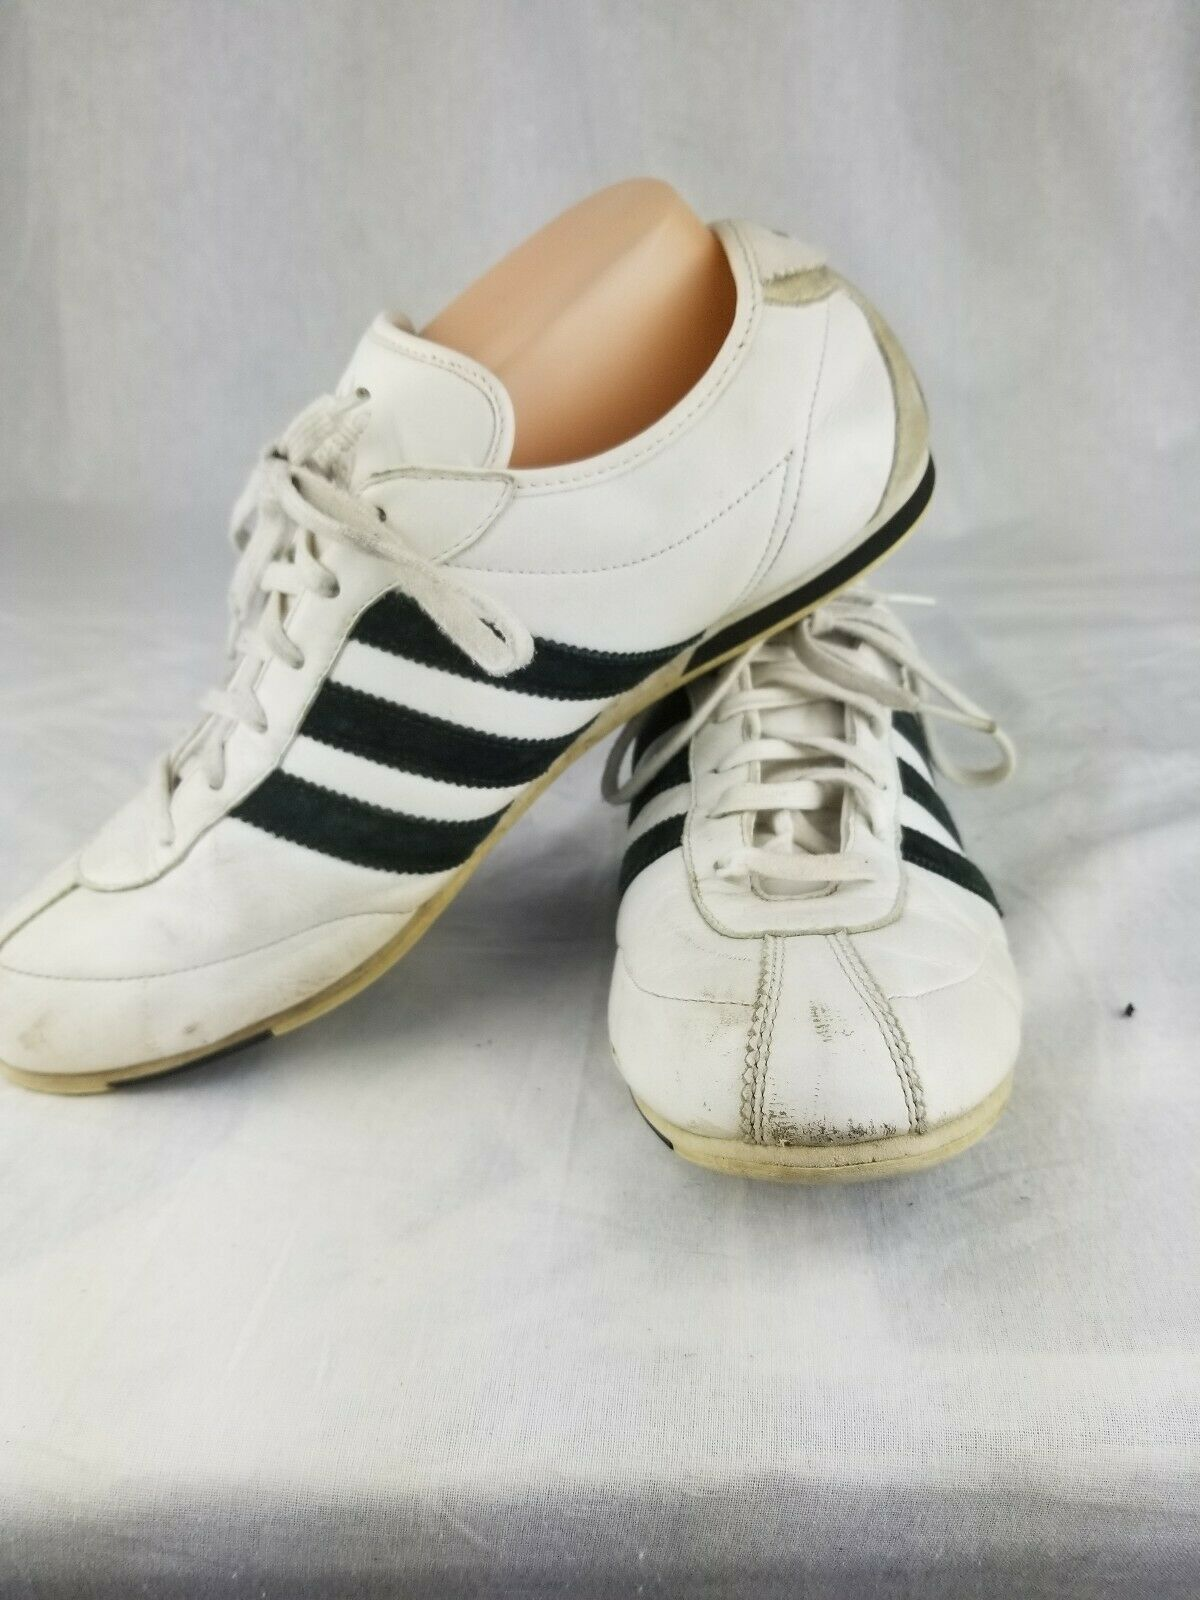 sports shoes 38a5d bce36 Classic 12 05 Adidas black and white stripe shoes woman size 9.5 463646 cute